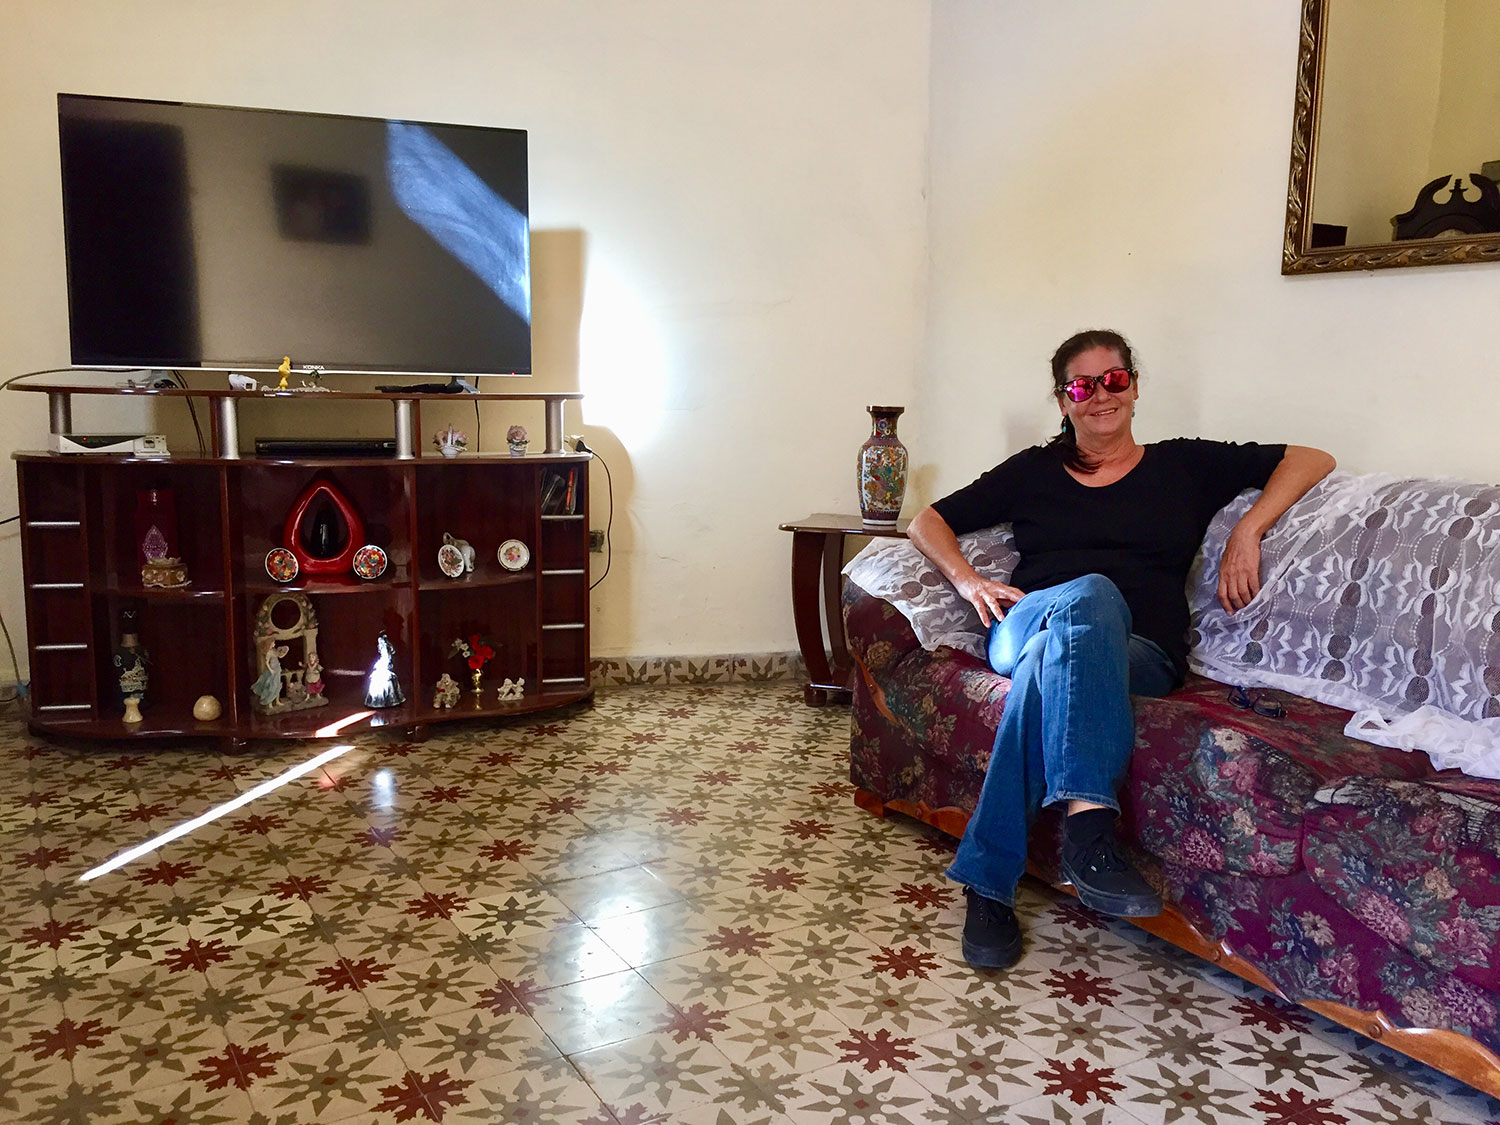 This  casa particular  in an old house in Havana had a nice living room. The bedrooms, however, had no windows.